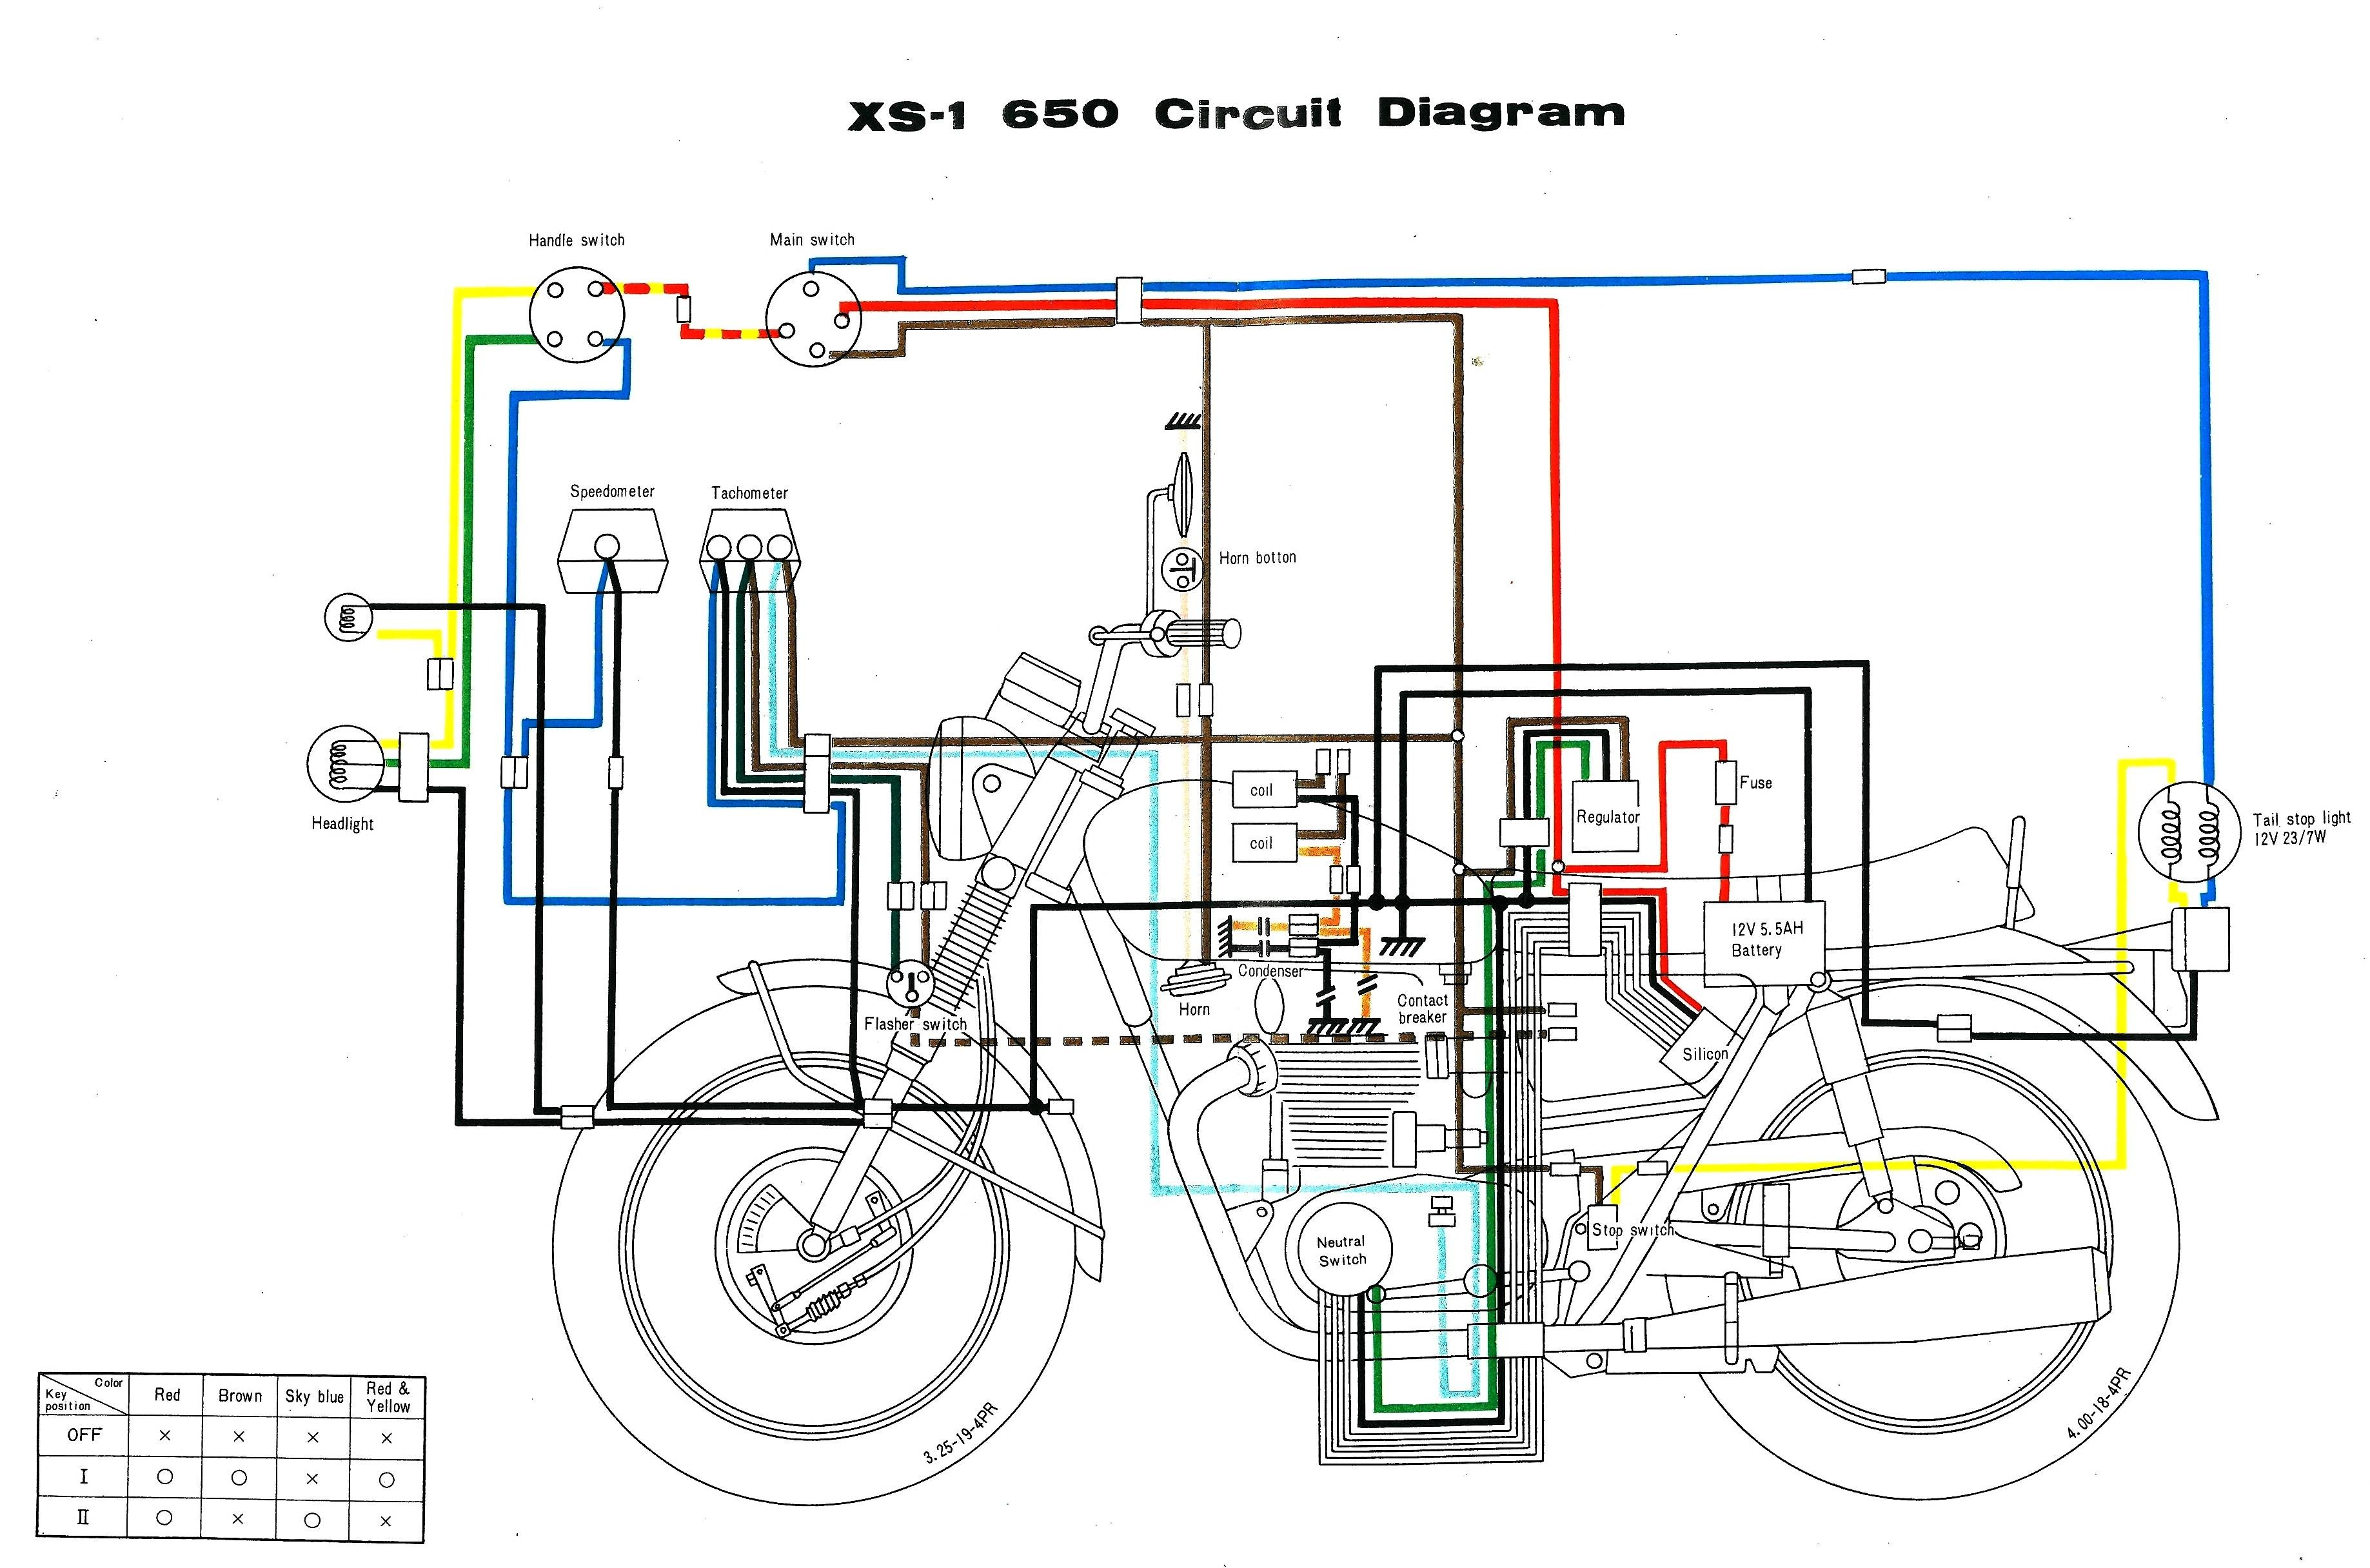 Motorcycle Electrical Wiring Diagram Wiring What S A Schematic Pared to Other Diagrams Of Motorcycle Electrical Wiring Diagram